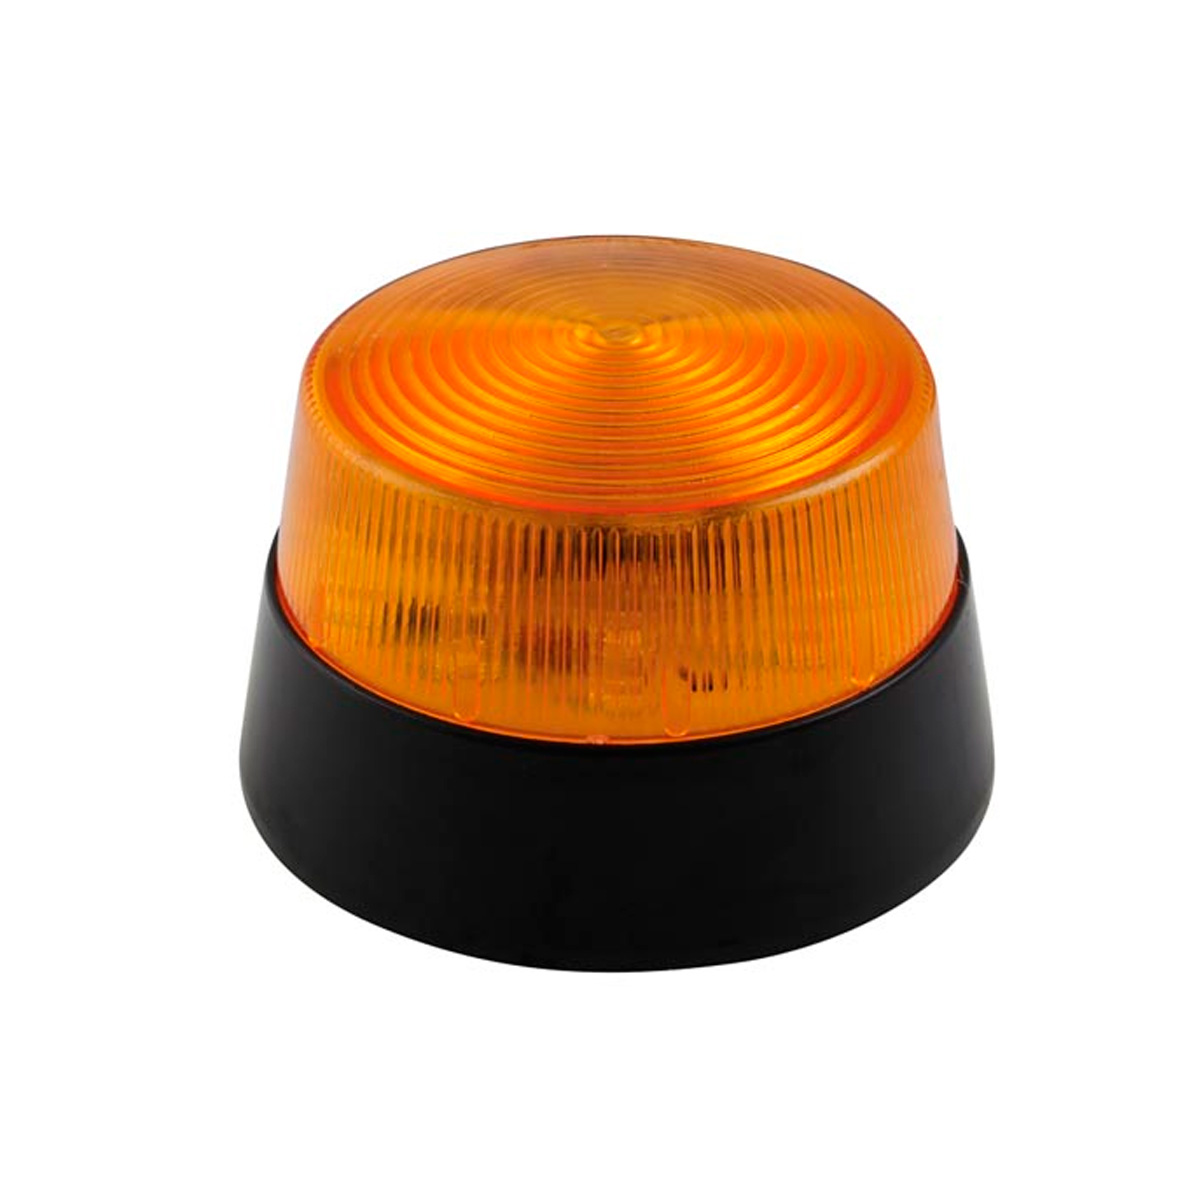 Lamparas Led Electro Dh Lámpara Estroboscópica Led Flash 12v Naranja